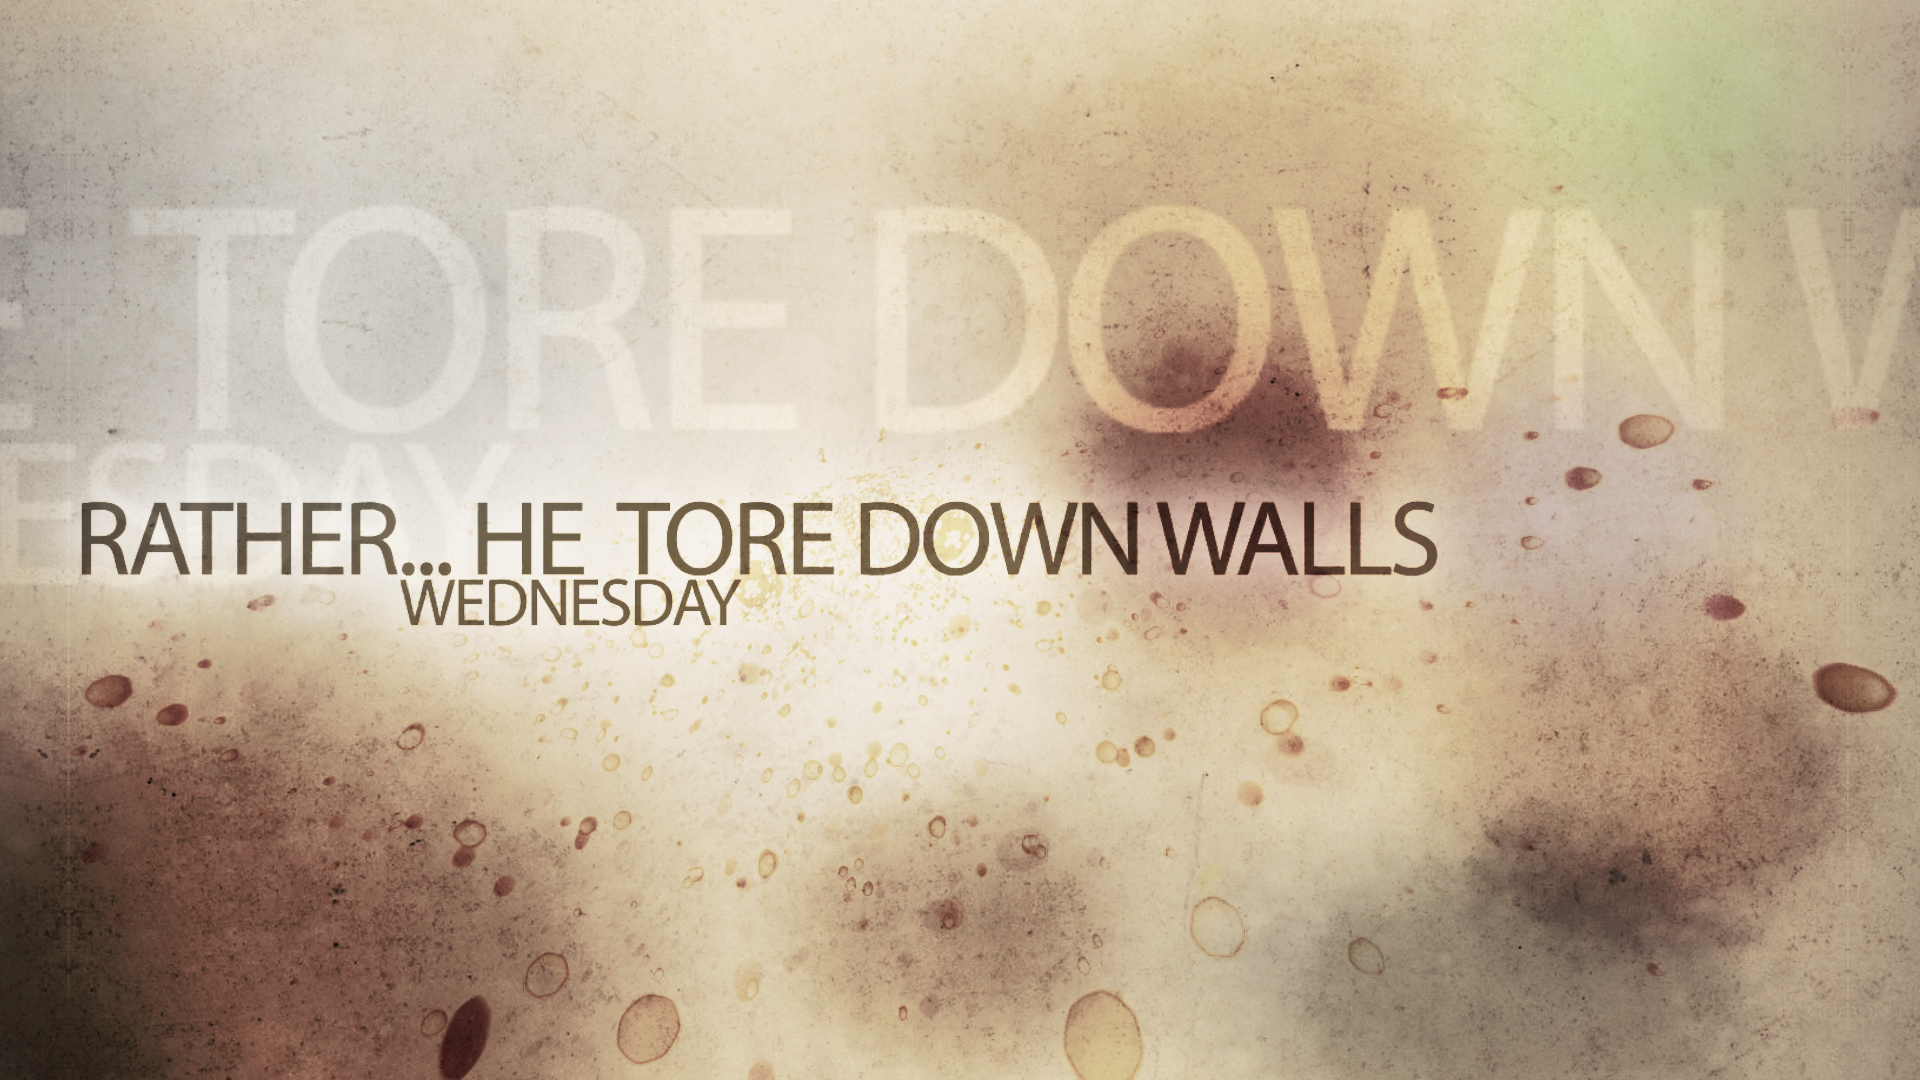 Rather... He tore down walls